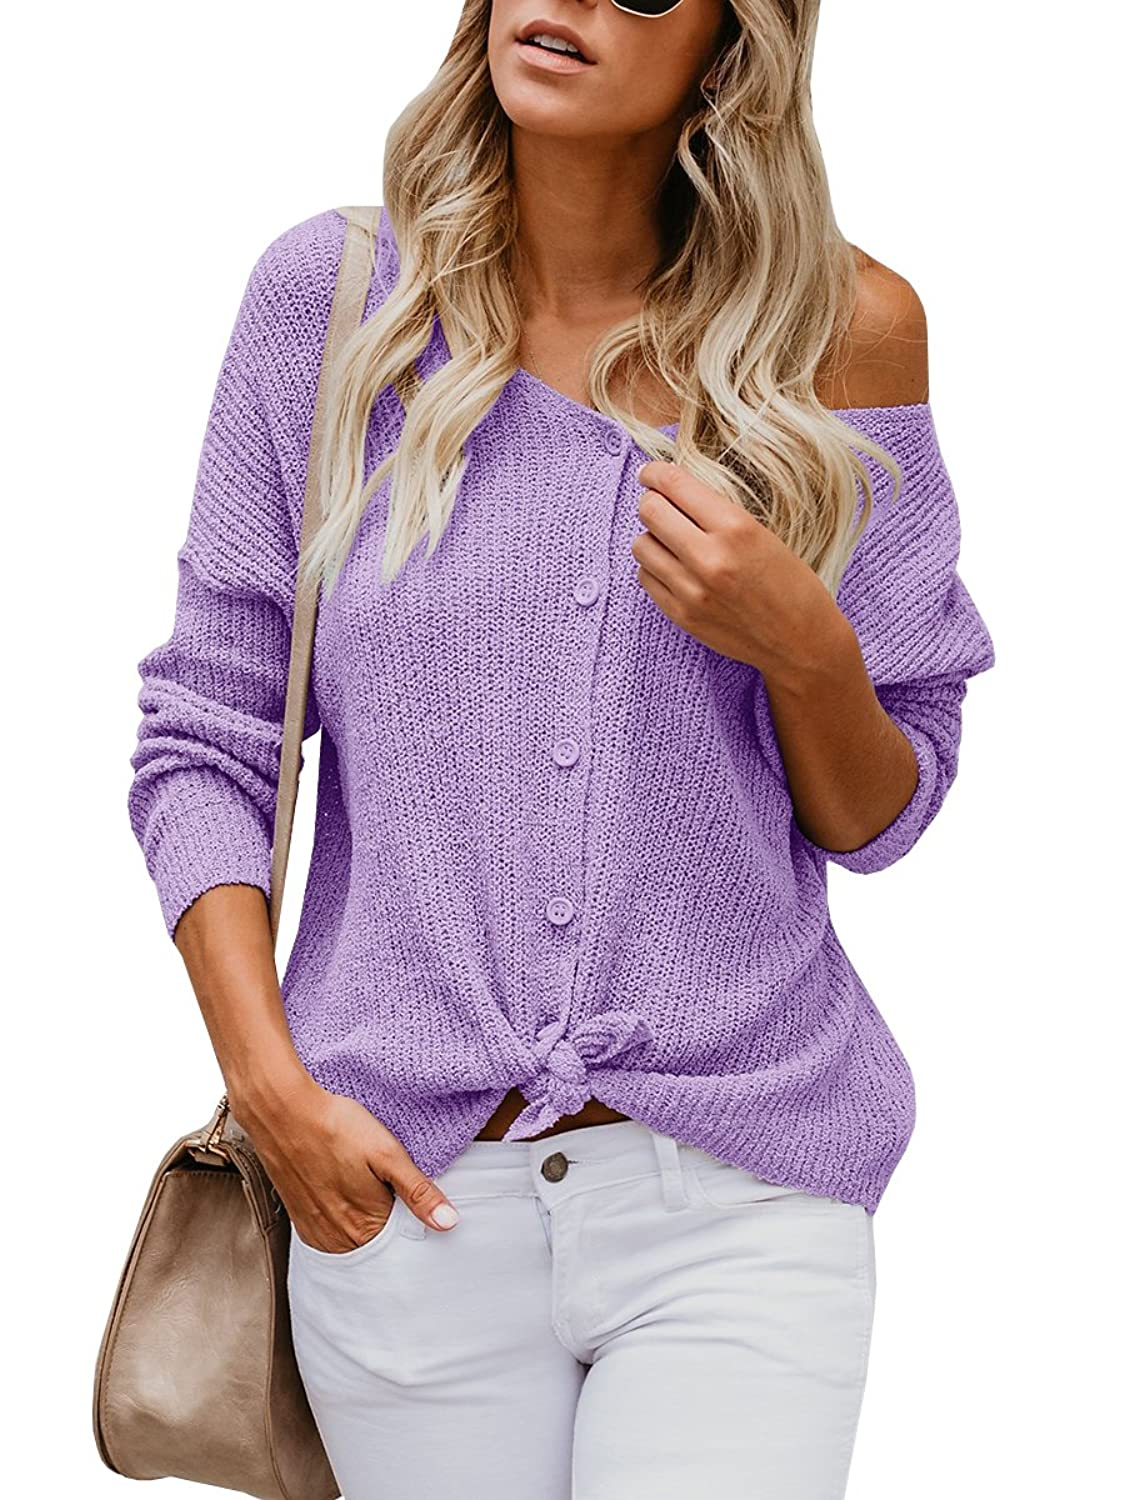 1b0d332c7d2 Womens button down sweaters, cute tie front cardigan ,womens long sleeve  knit top, fall winter lightweight cardiagn sweater. This off the shoulder  sweater ...